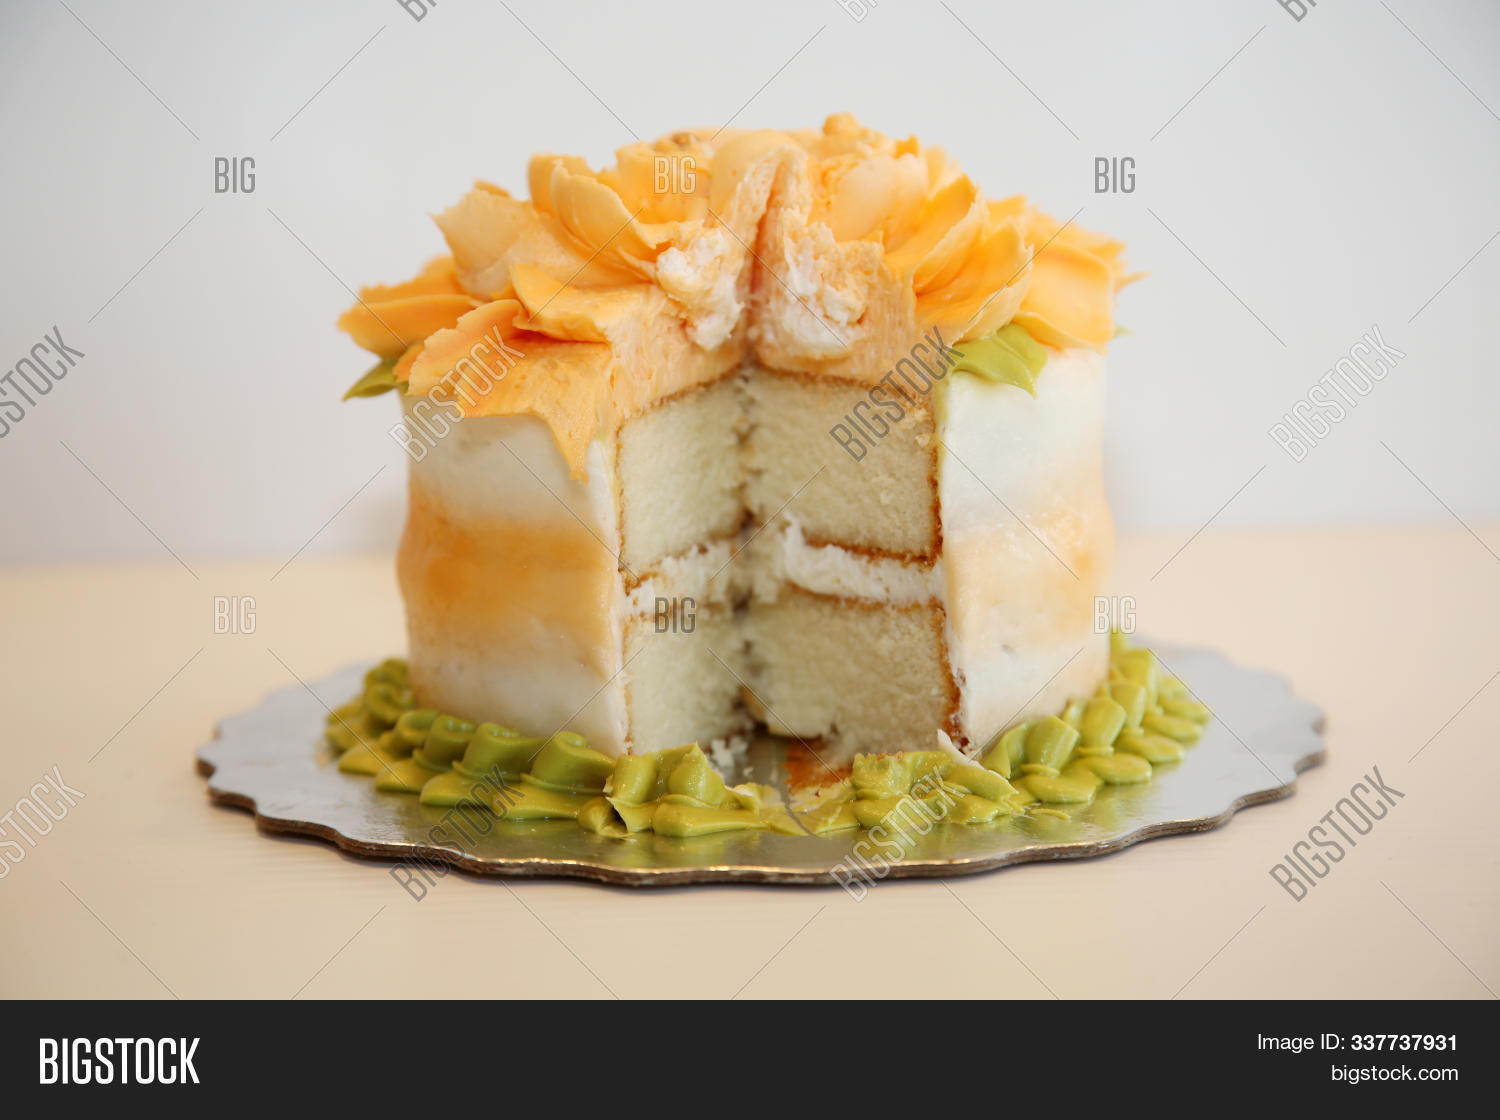 Birthday Cake. Beautiful Cake ready to be served at a party or event. Cake is enjoyed world wide for any special occasion and even as a special treat. Enjoy some cake today.